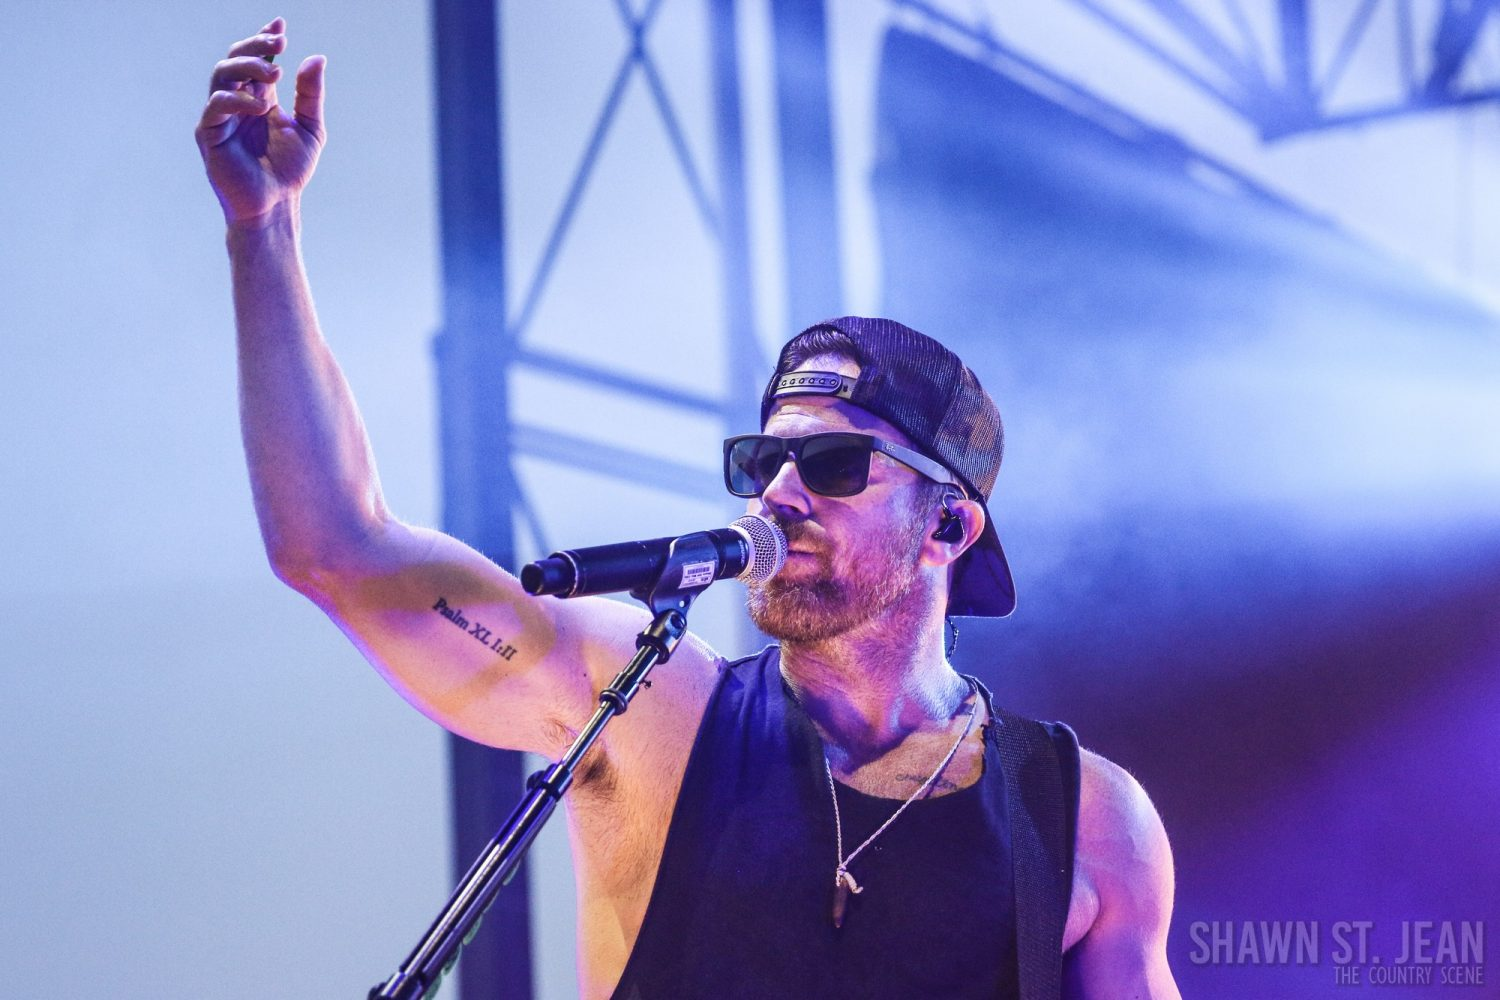 Kip Moore in Rhinebeck NY, August 24, 2018 / Photo by Shawn St. Jean